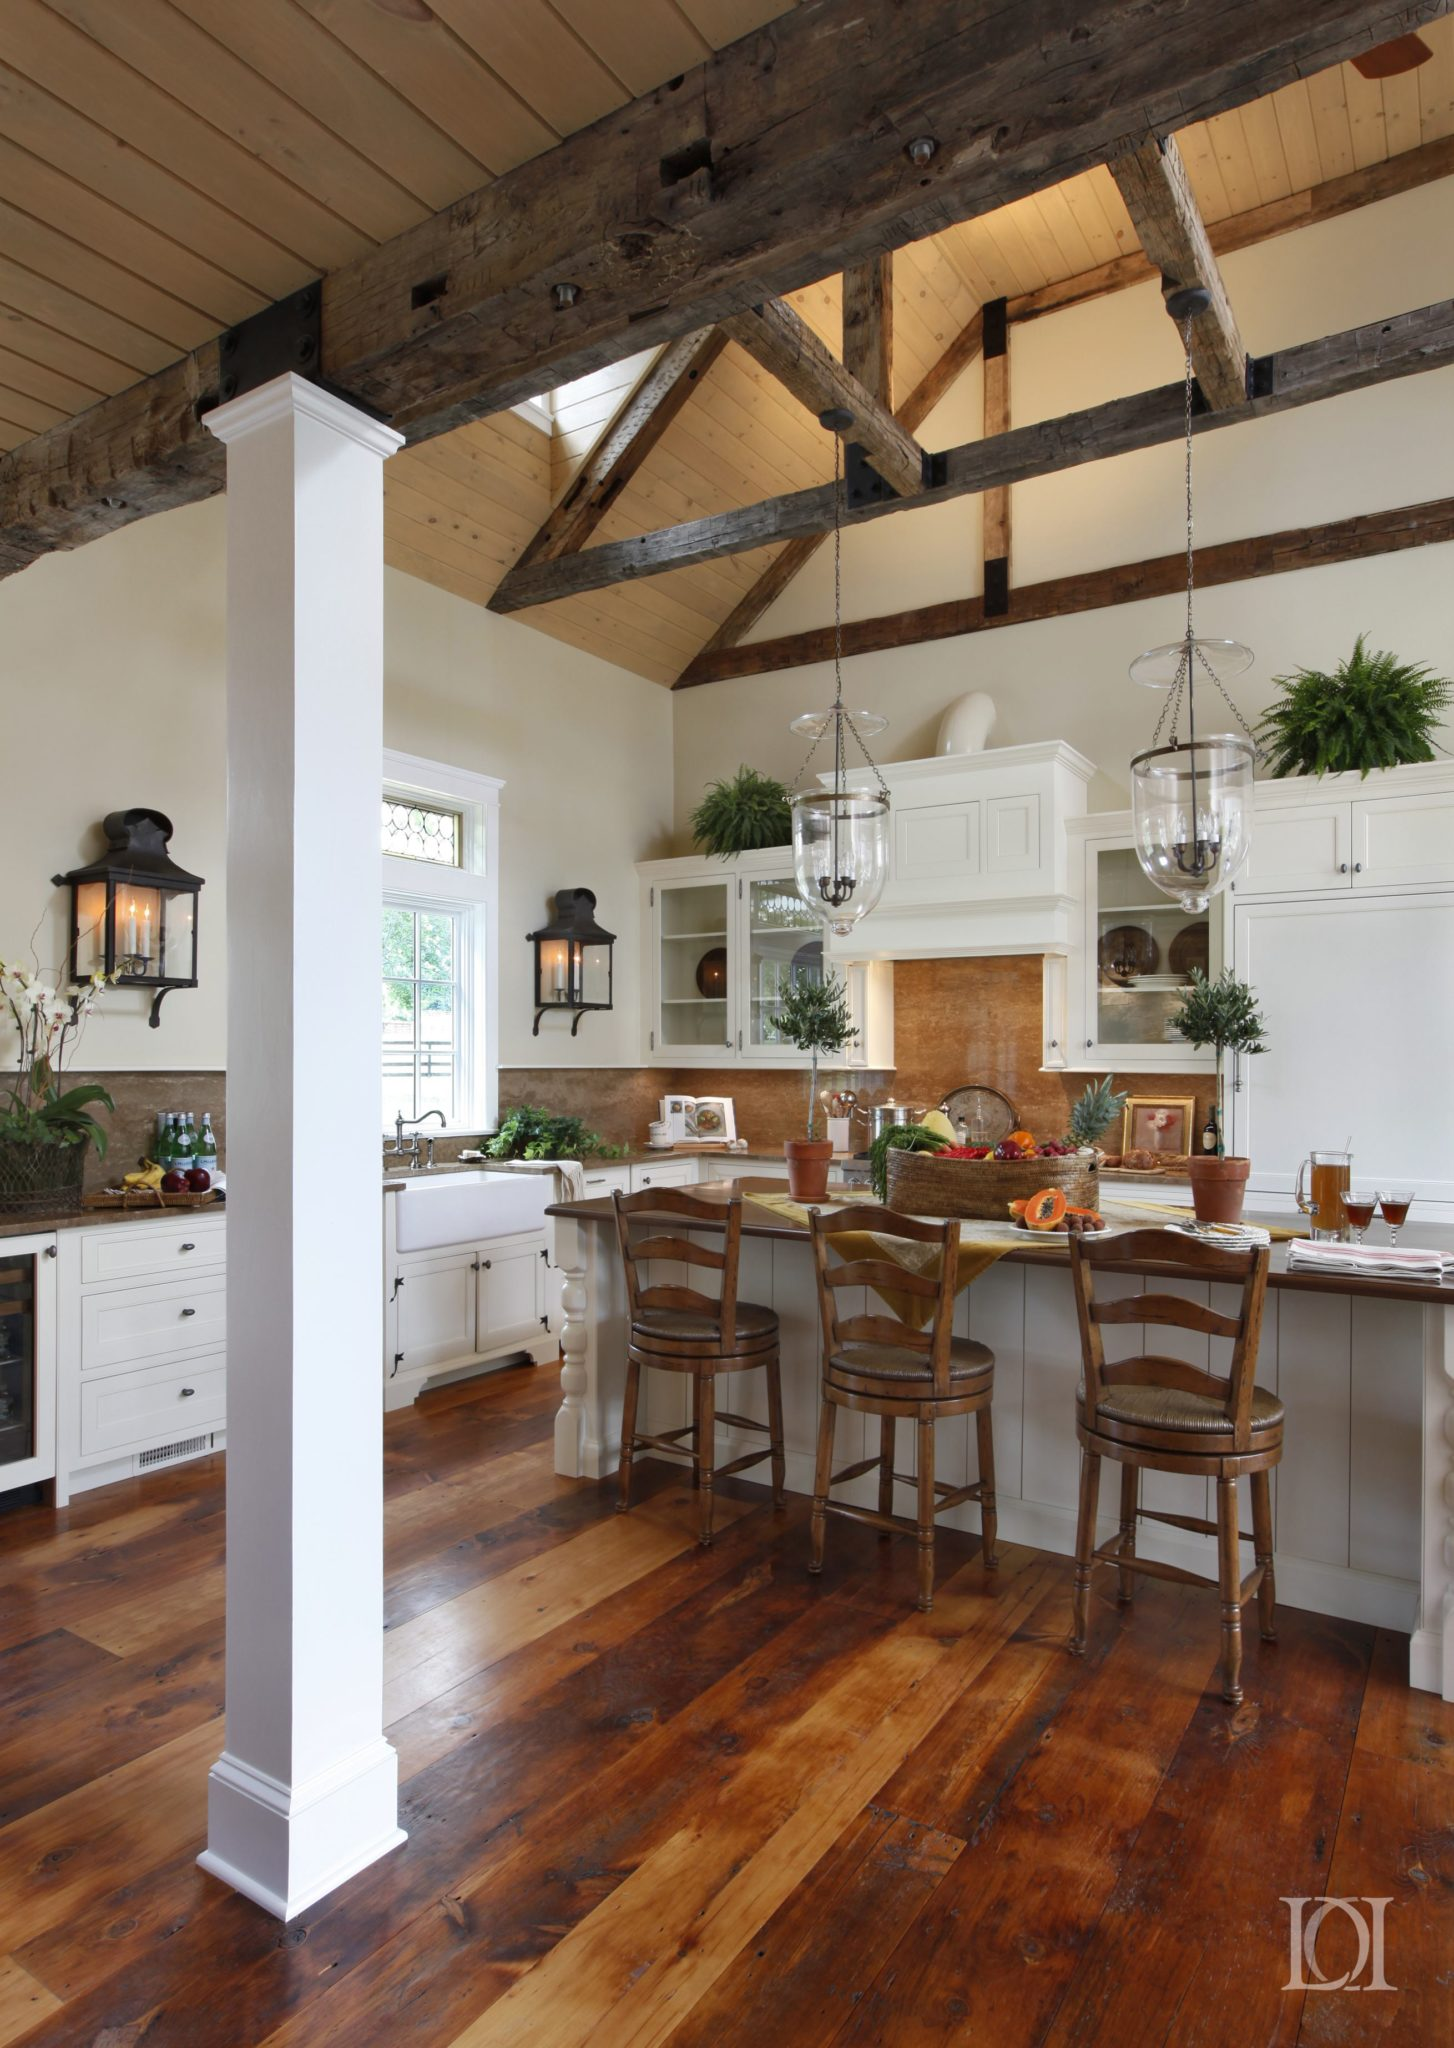 Renovated farmhouse kitchen with white cabinets and mahogany island top by Deborah Leamann Interior Design